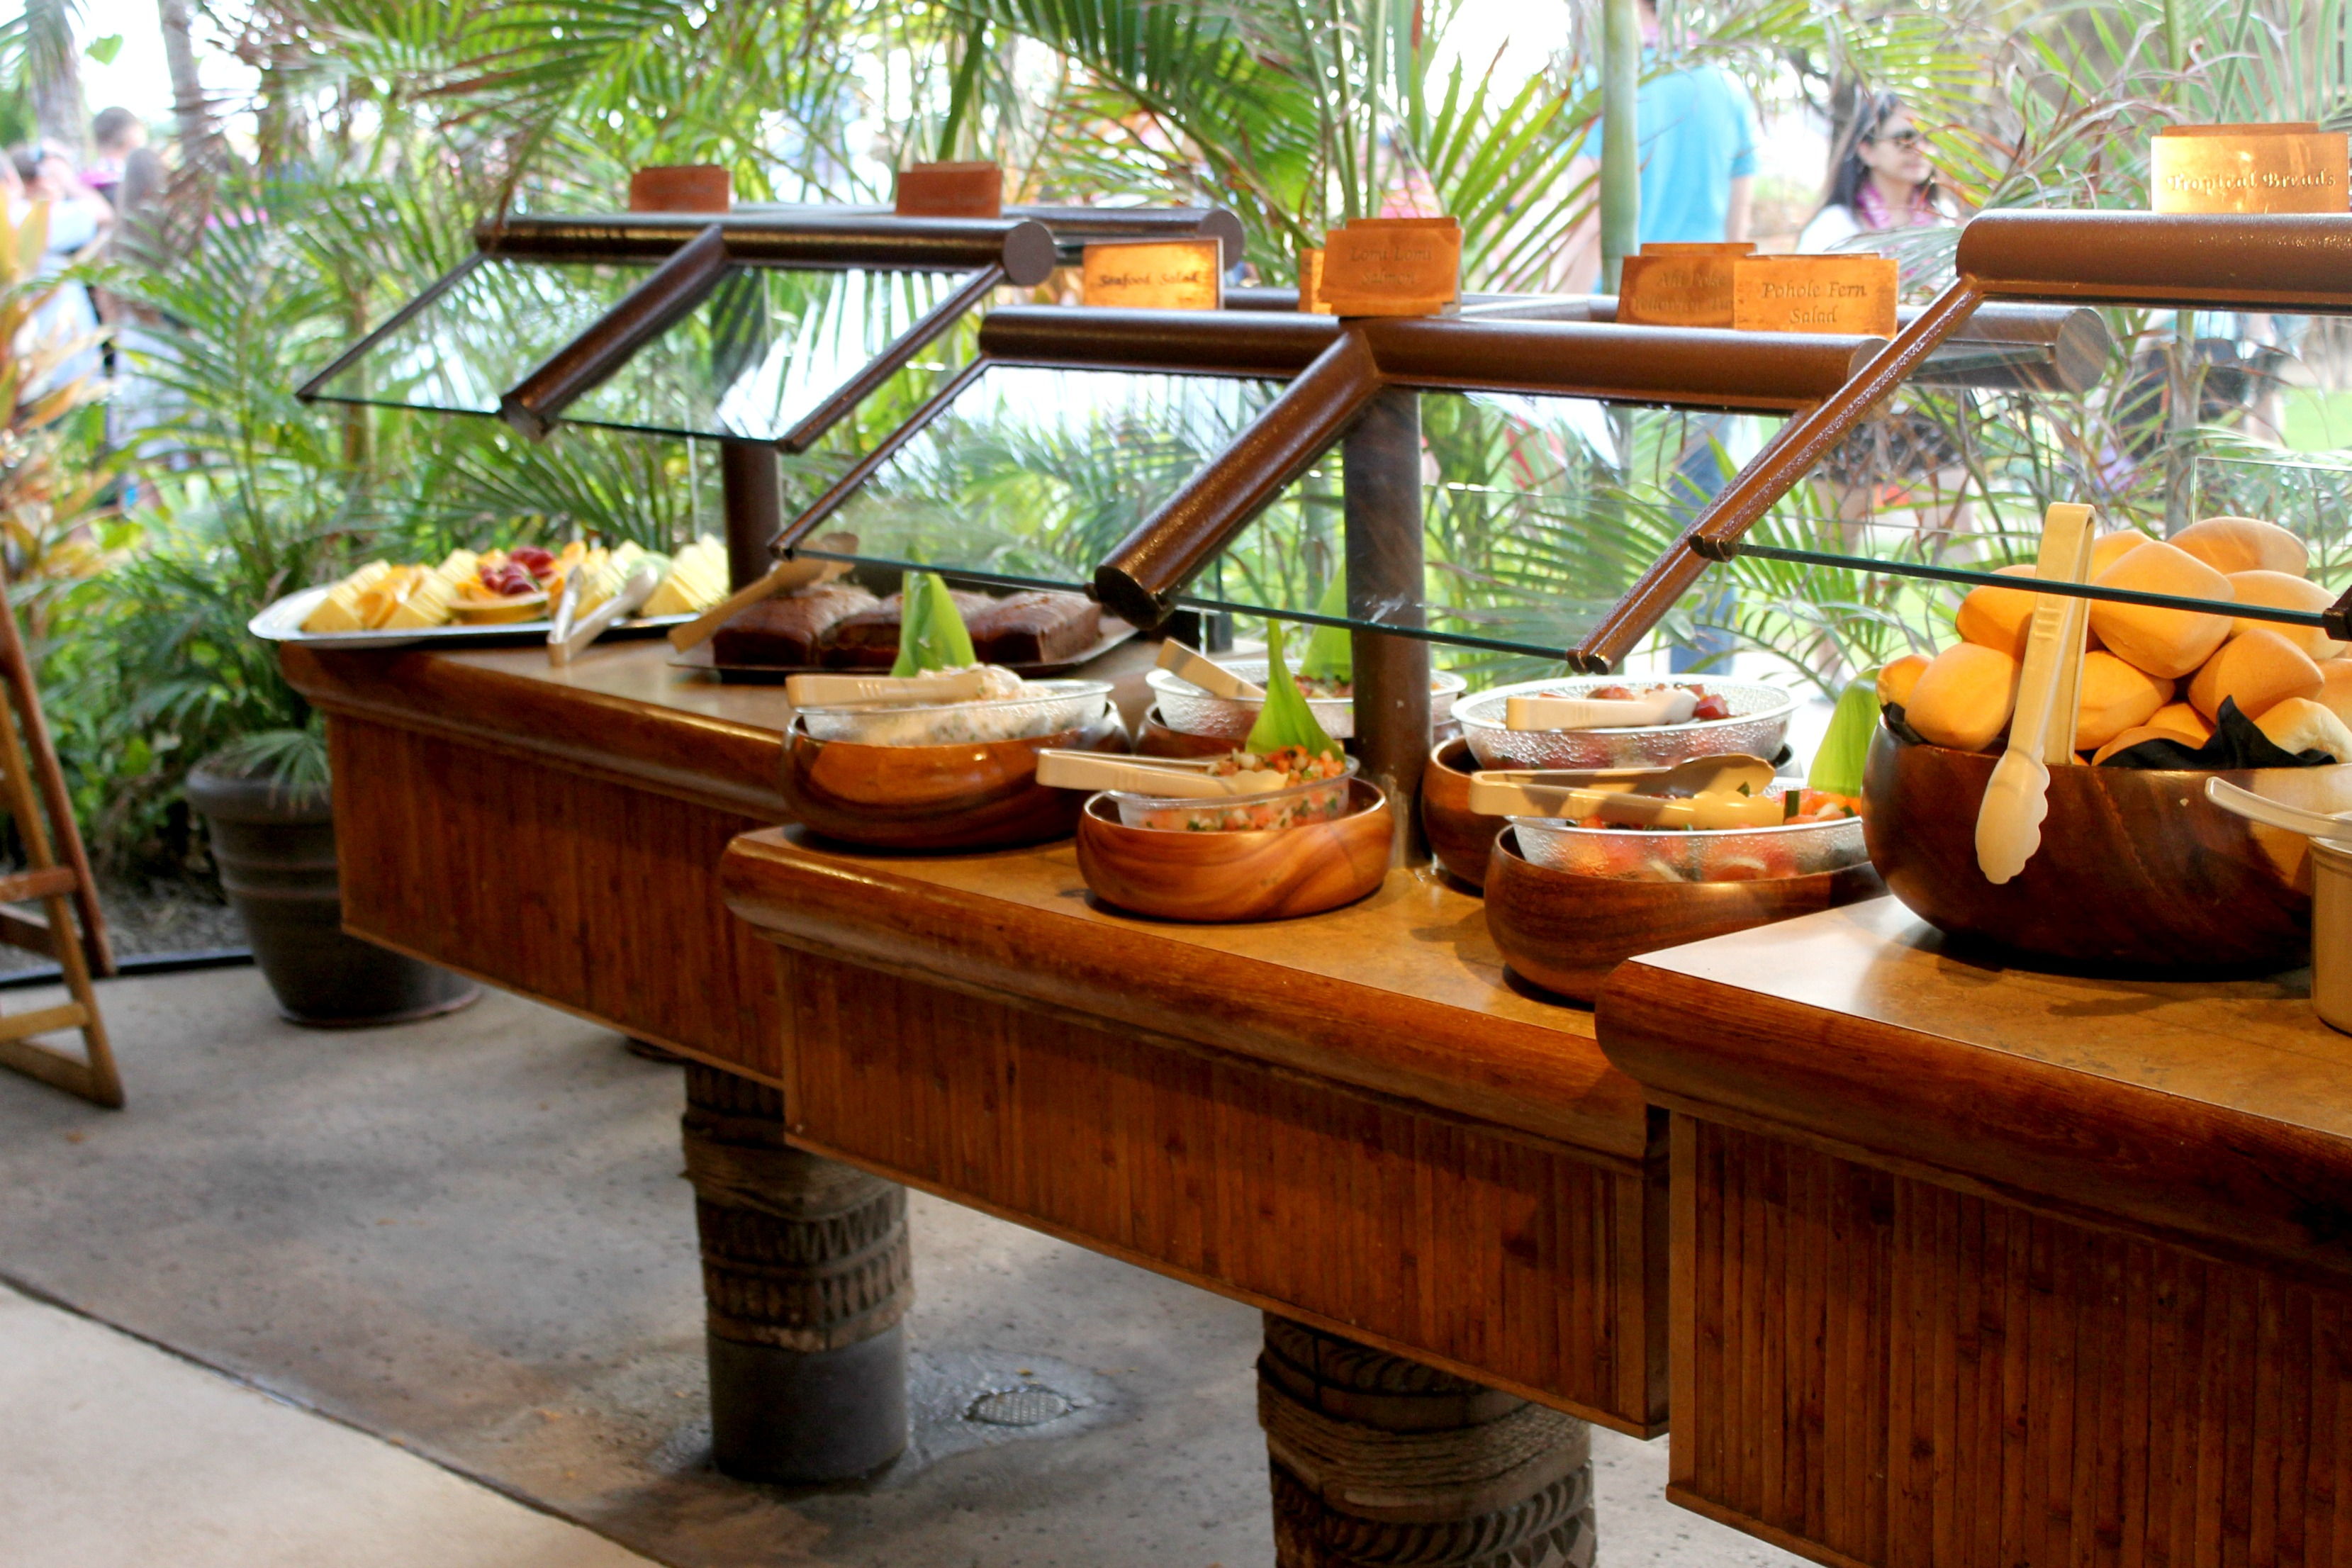 The Old Lahaina Luau Buffet